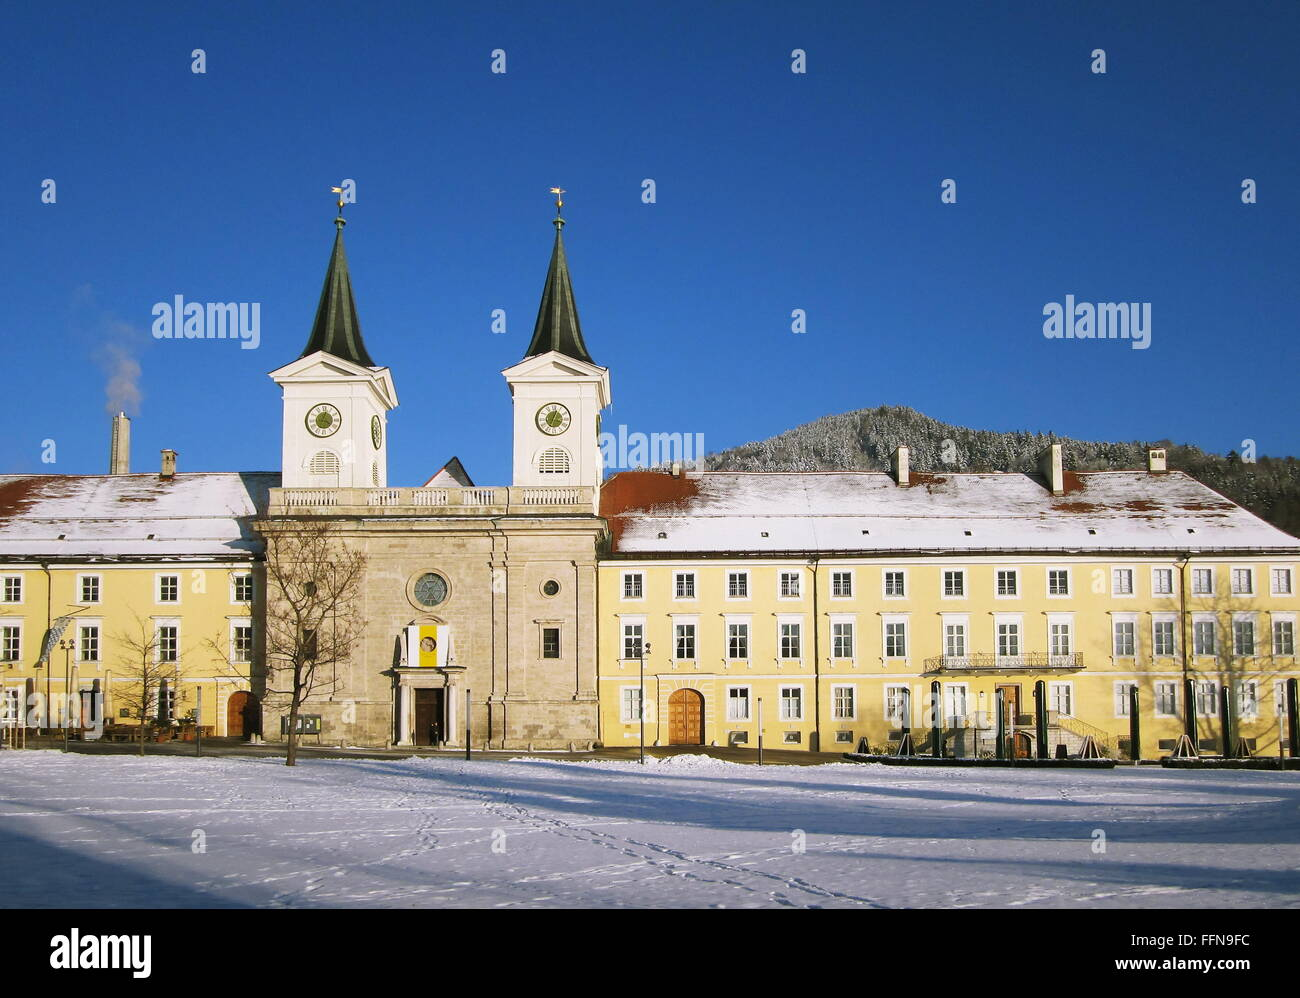 geography / travel, Germany, Bavaria, Tegernsee, former monastery and Wittelsbach castle, exterior view, Additional - Stock Image